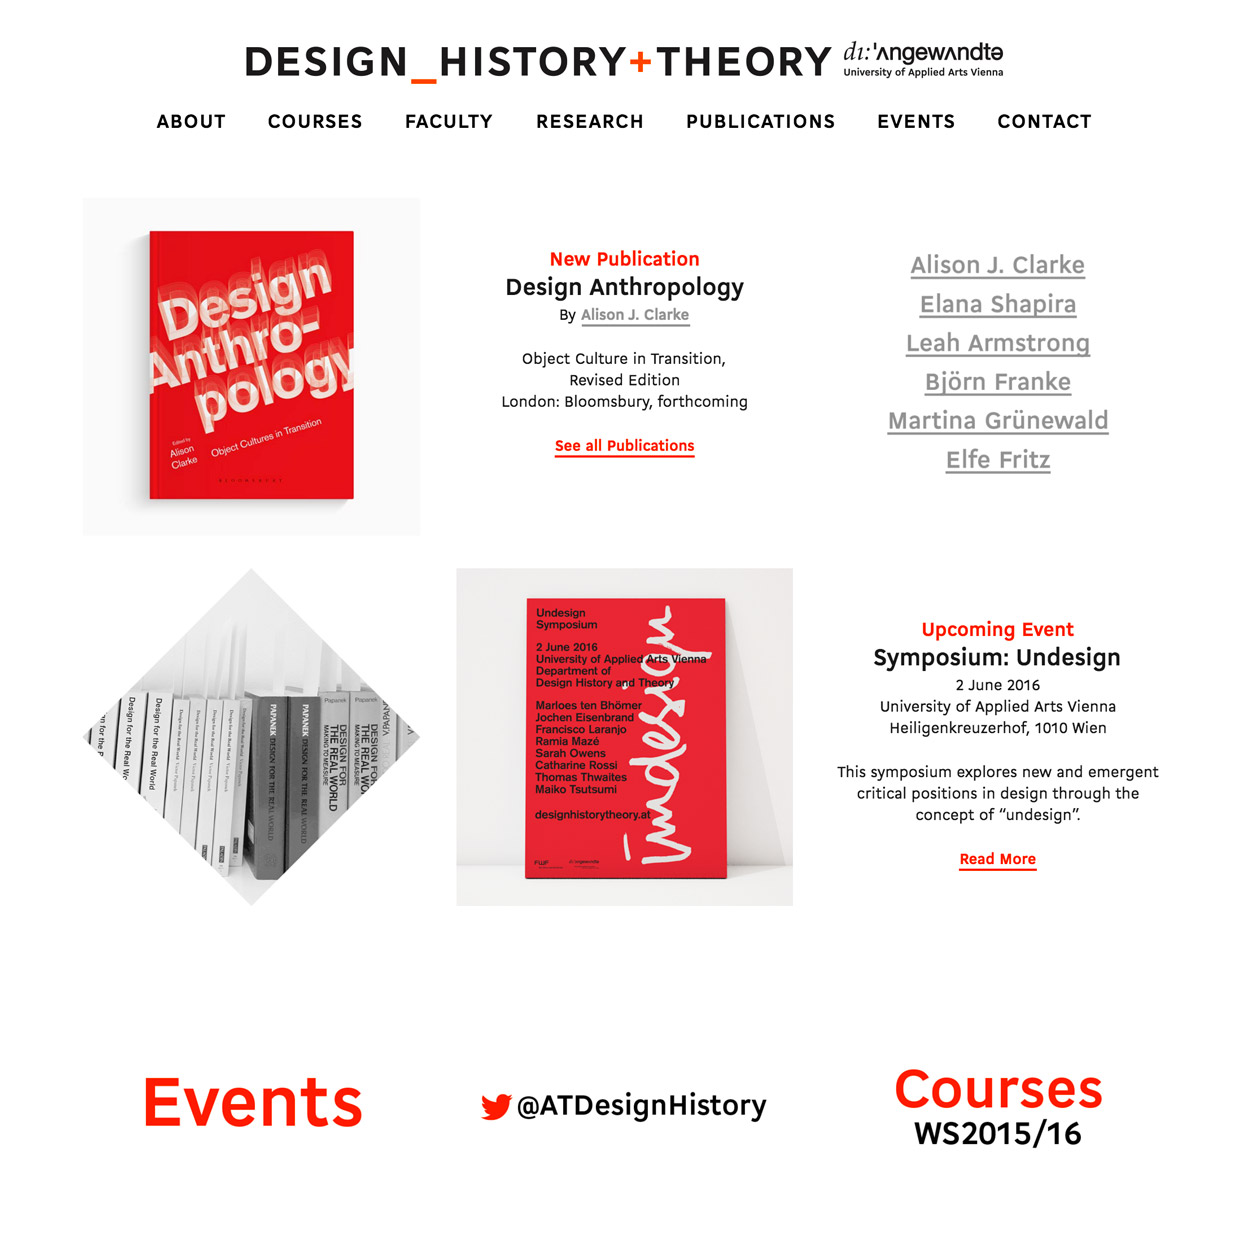 DesignHistoryTheory